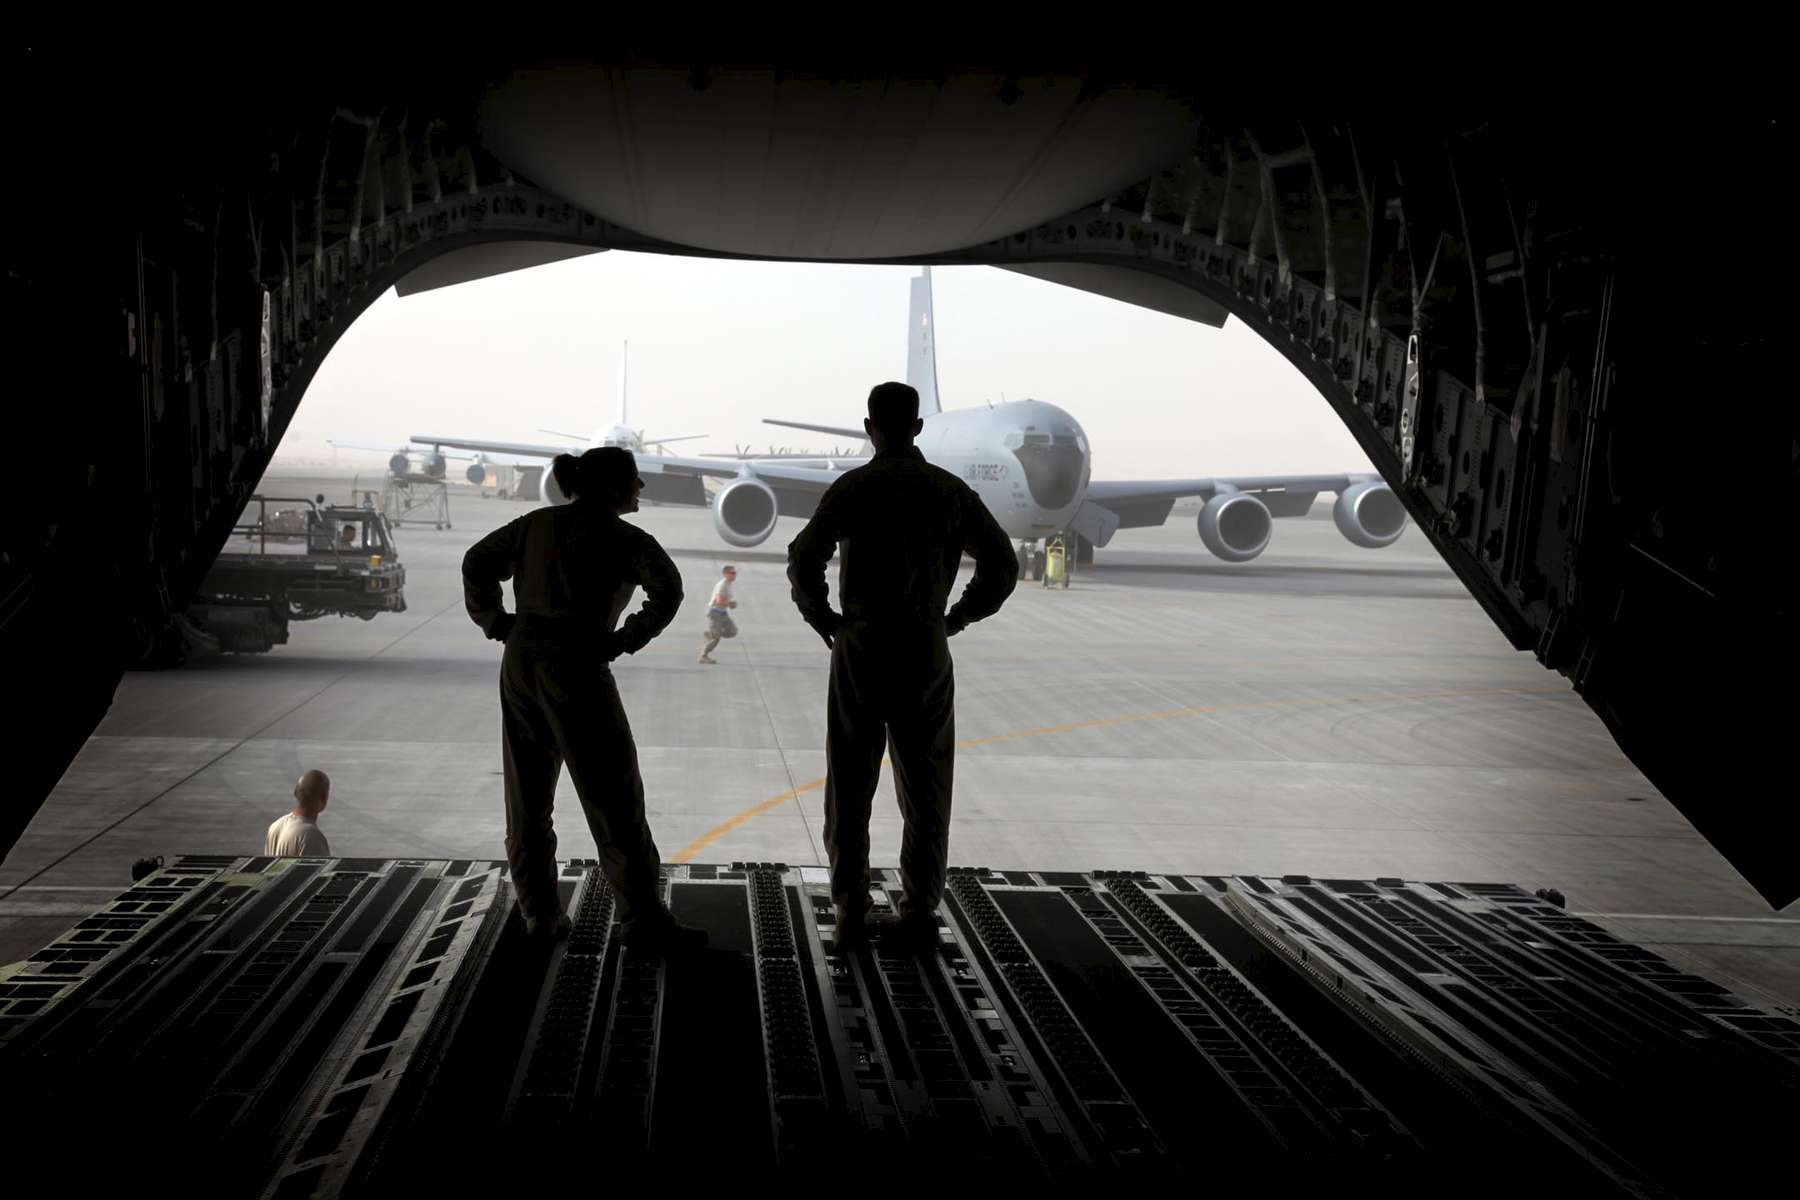 Loadmasters Senior Airman Christine Condoleon, left, and Master Sergeant Brian Cook, right,  stand on the loading ramp of their C17 cargo jet as they prepare to unload at an air base at an undisclosed location in the Persian Gulfon Saturday, February 23, 2009.  (Laurence Kesterson / Staff Photographer)  EDITORS NOTE:  JSUPPLY29, 2/21/09, McGuire AFB, New Jersey.  A supply mission to Afghanistan and other points in the Persian Gulf.